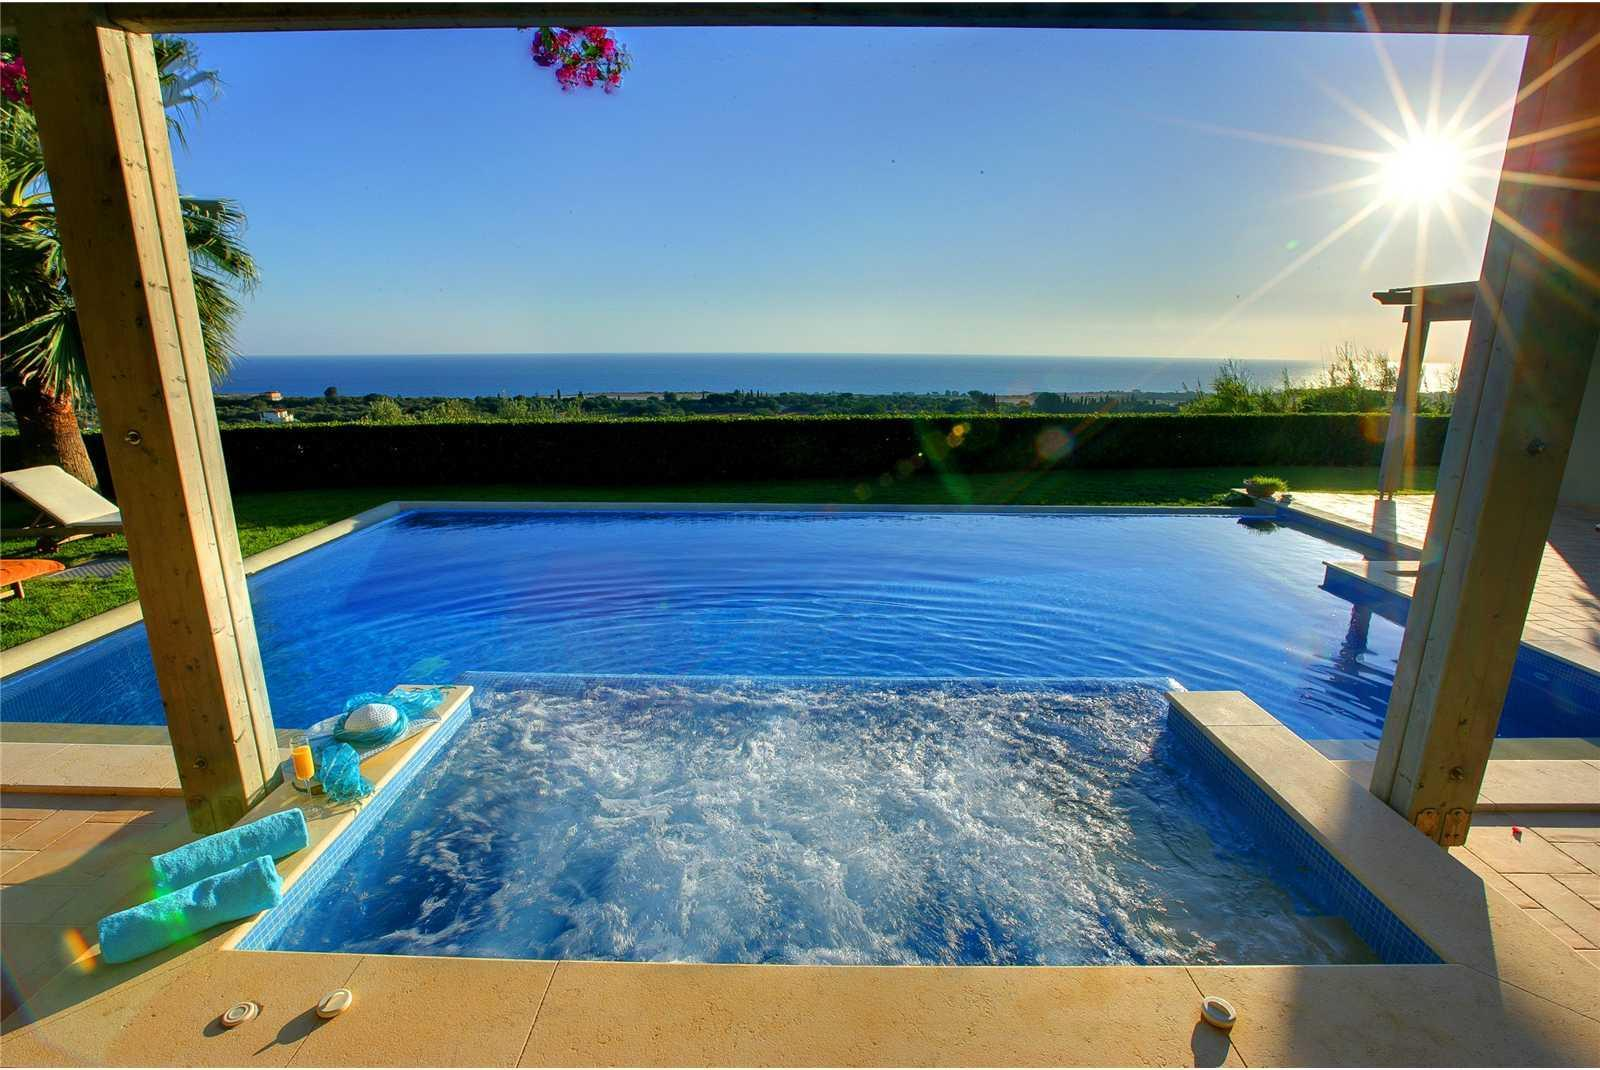 Jacuzzi Pool Villa Bandos Jacuzzi Villa With Sea View Hd Desktop Wallpaper